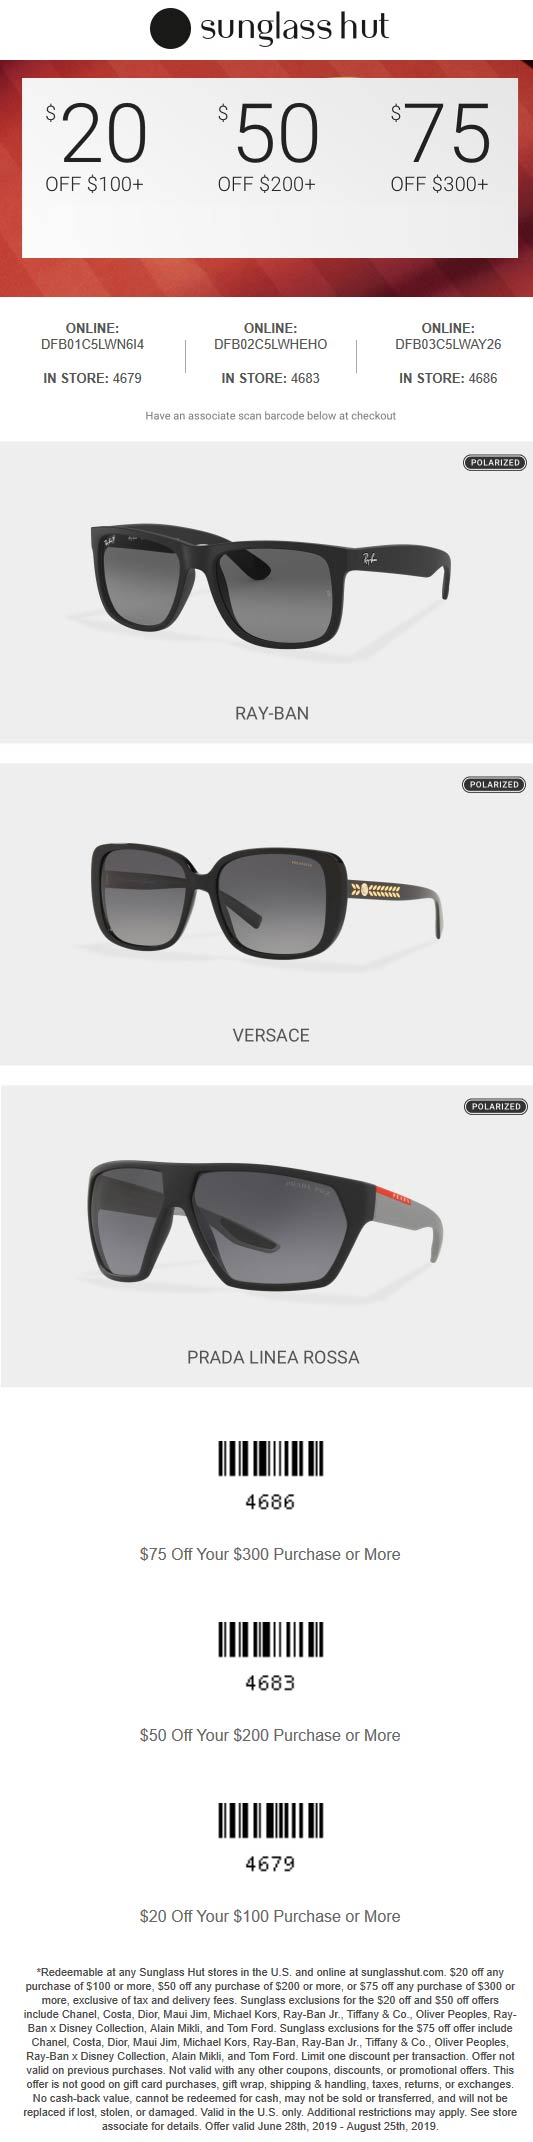 image relating to Sunglass Hut Printable Coupons identified as Sungl Hut coupon codes - $20 off $100 even more at Sungl